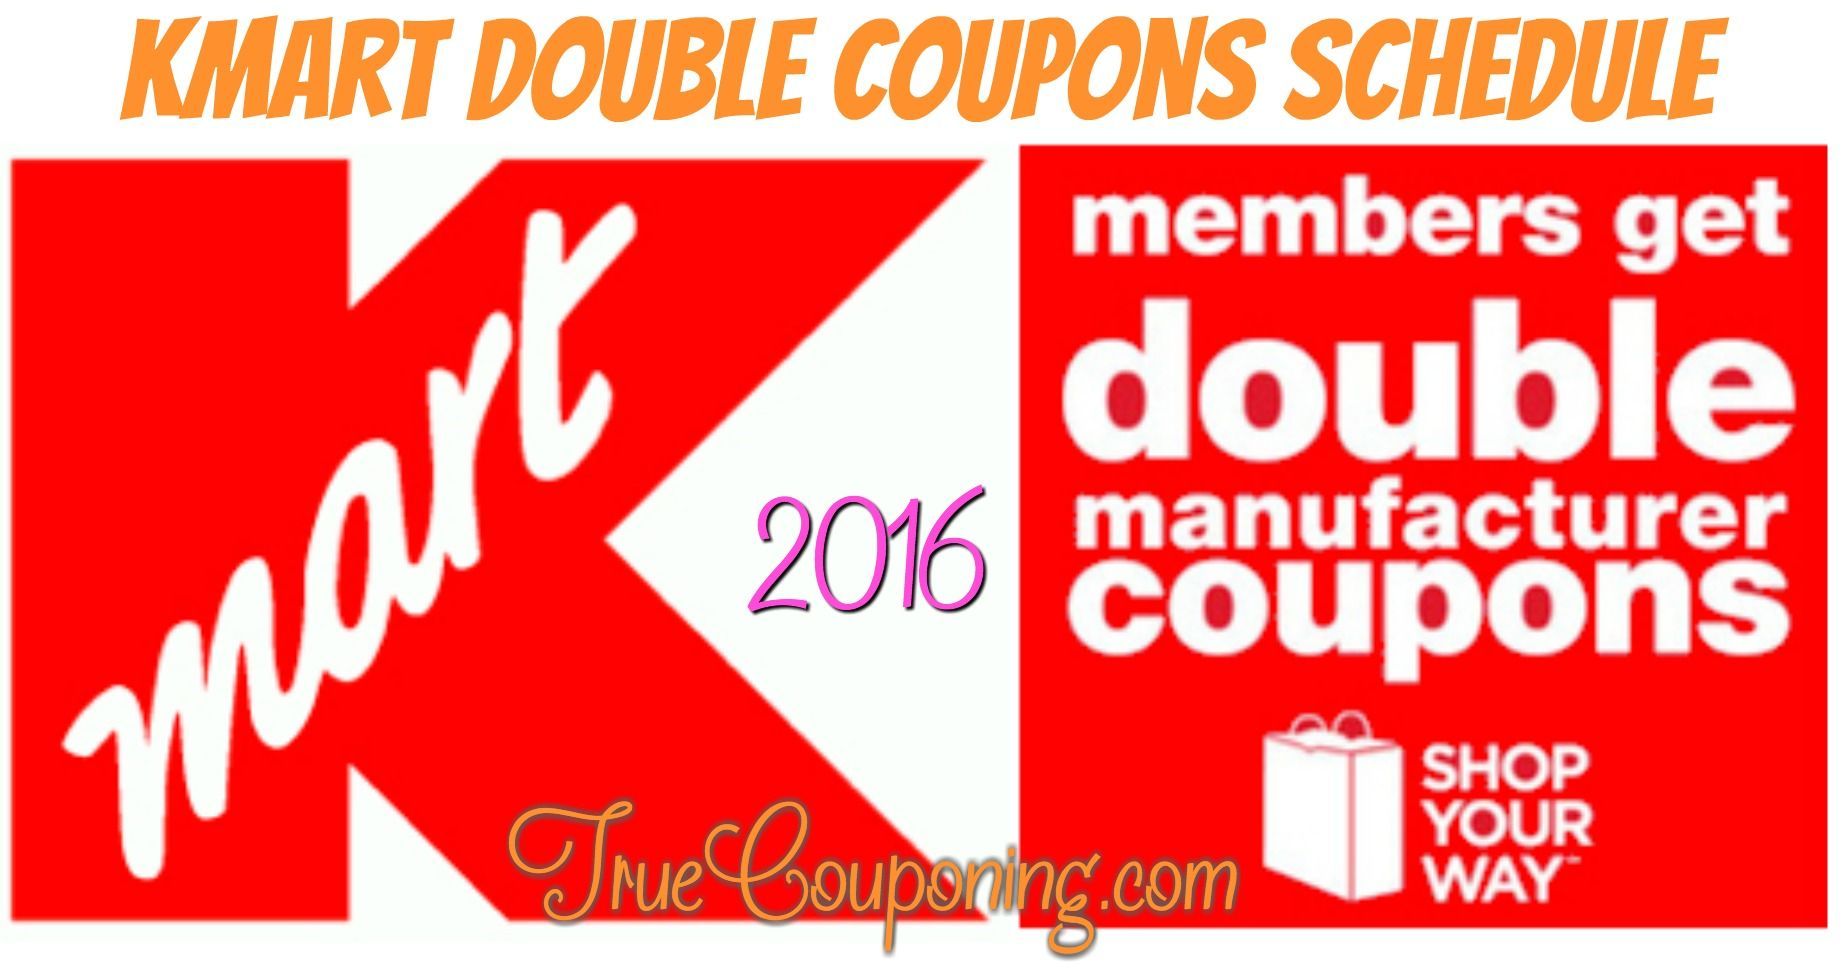 Discount coupons for kmart